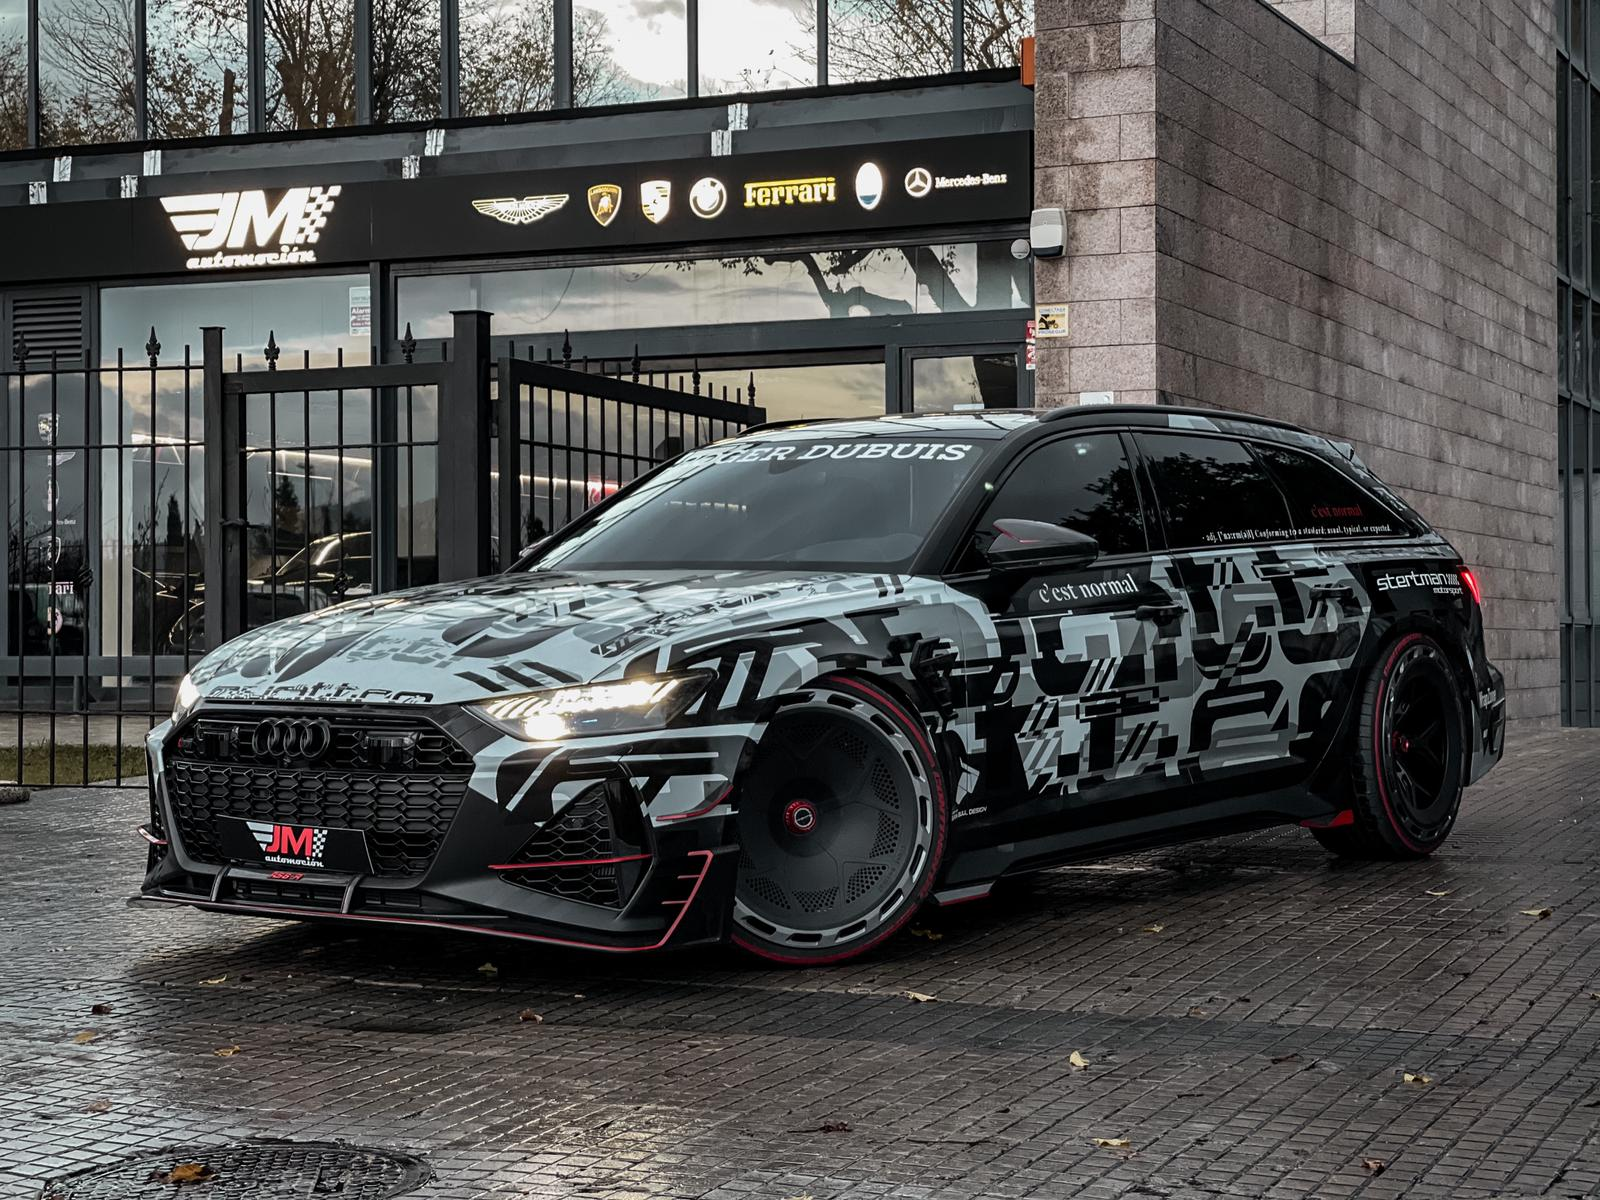 AUDI RS6-R ABT 1 OF 1 'LEON'